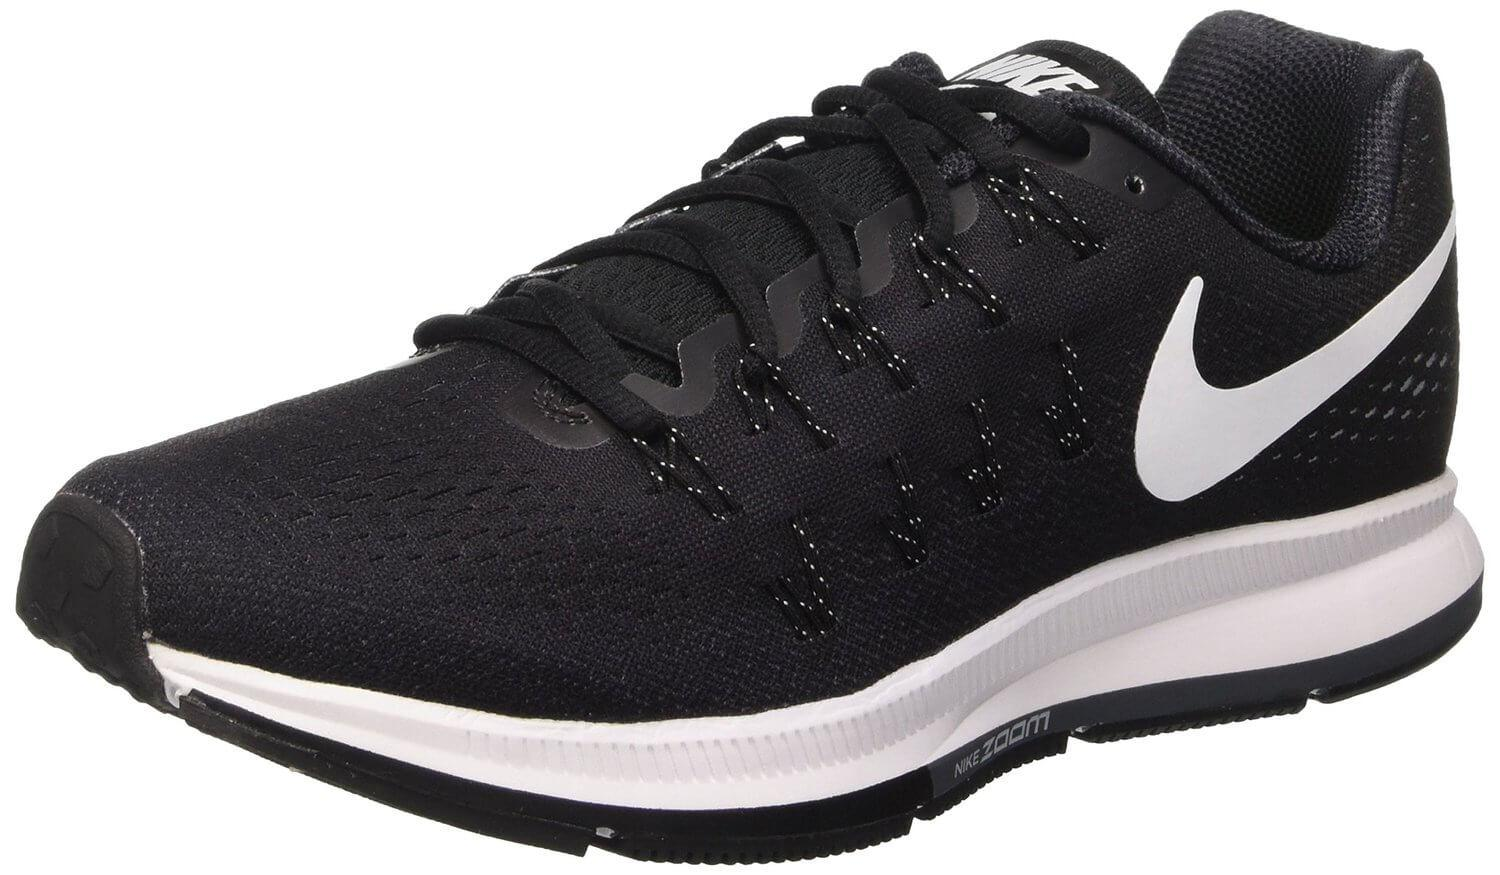 16280428e6043 the Nike Air Zoom Pegasus 33 is the latest in the long-running line that ...